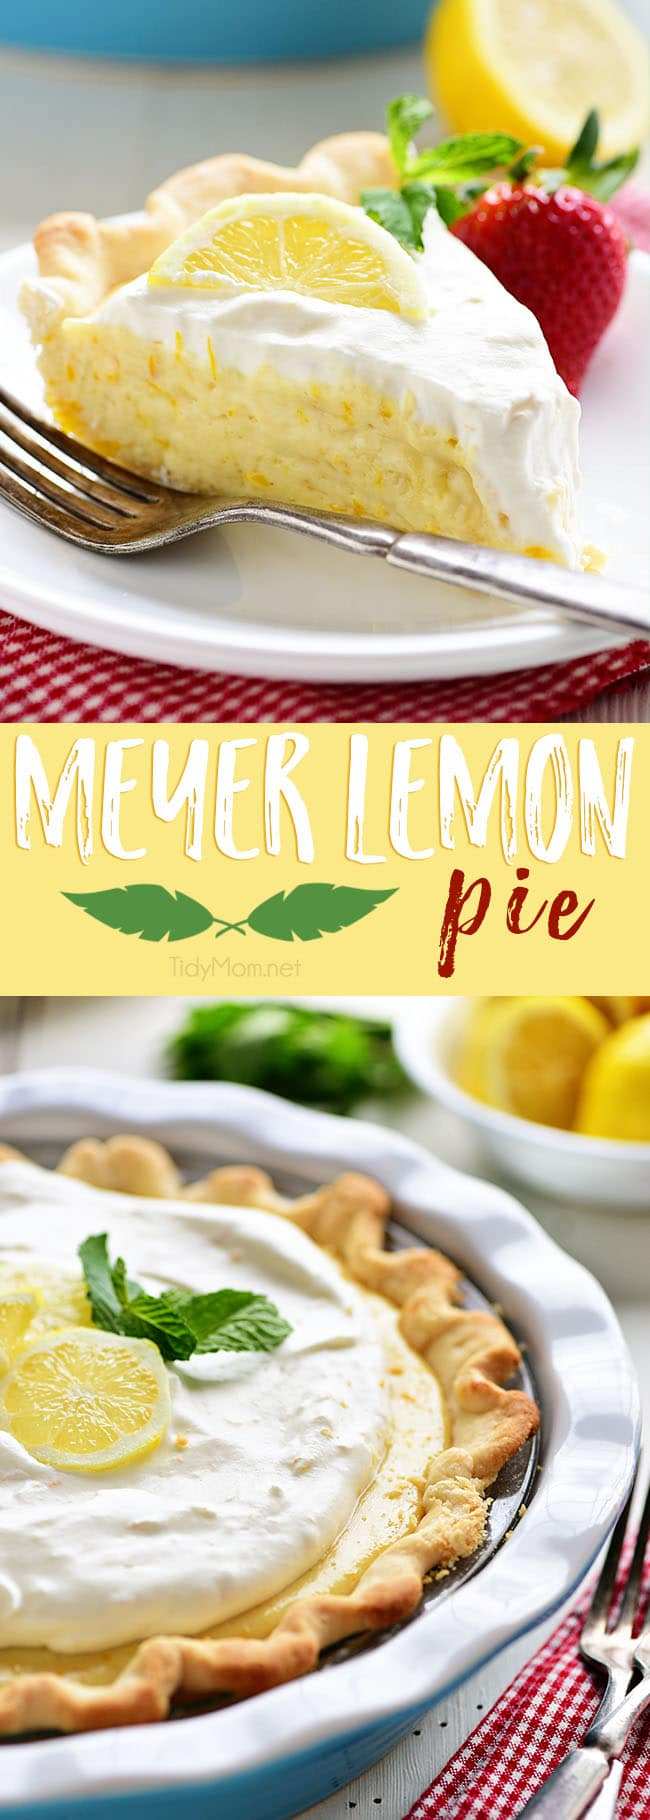 This Meyer Lemon Pie packs a ton of lemon flavor with a fluffy texture to a simple homemade dessert. Pops of sweet tangy Meyer lemons are perfect for spring. The pie is not overly sweet and has lots of citrus love all the way through to the homemade whipped cream for the top!  Get the full printable recipe at TidyMom.net #pie #lemon #lemonpie #meyerlemons #dessert